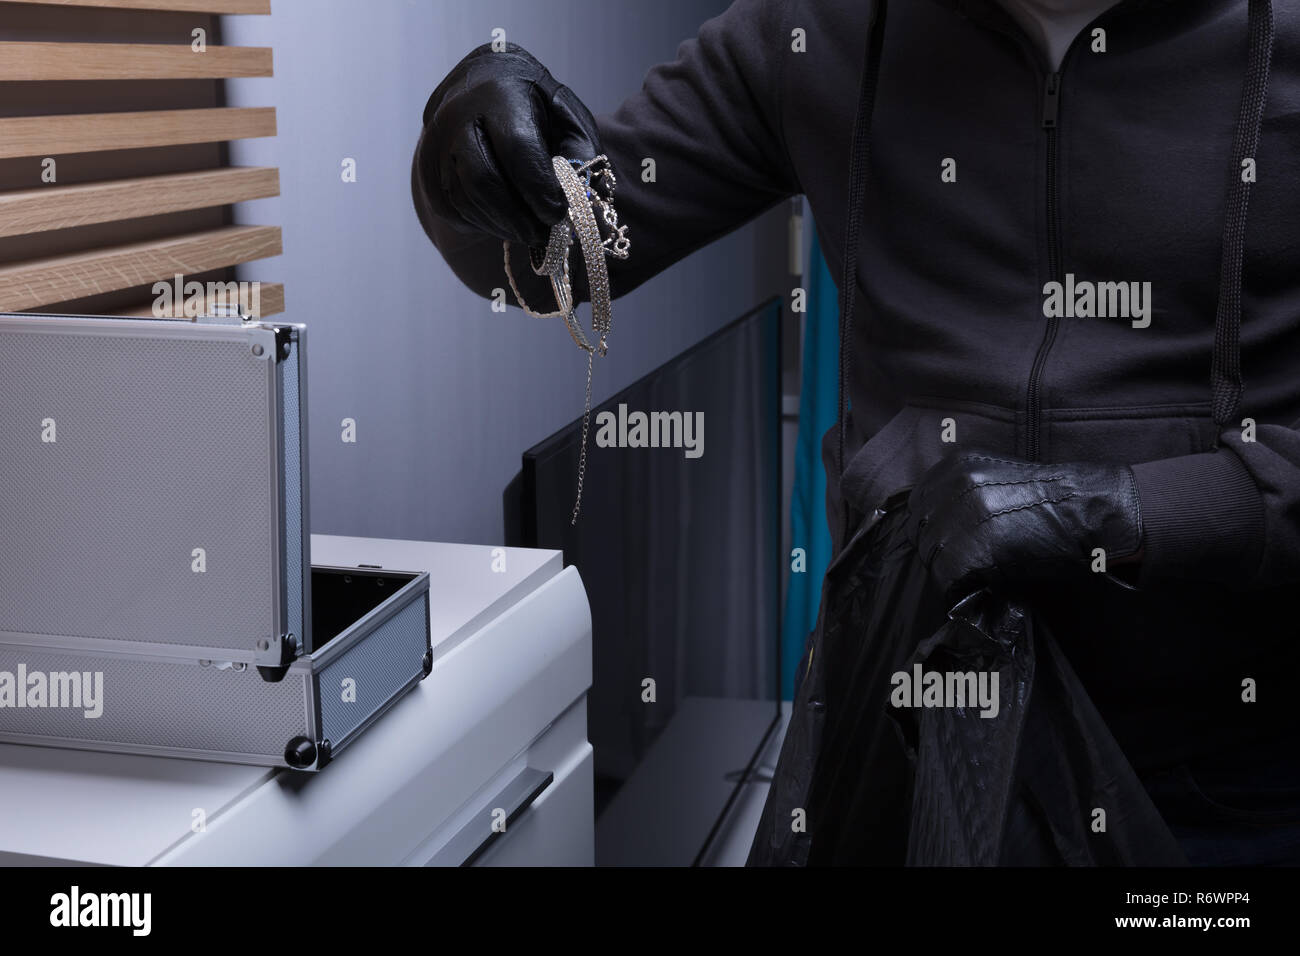 Robber Wearing Gloves Stealing Jewelry Stock Photo